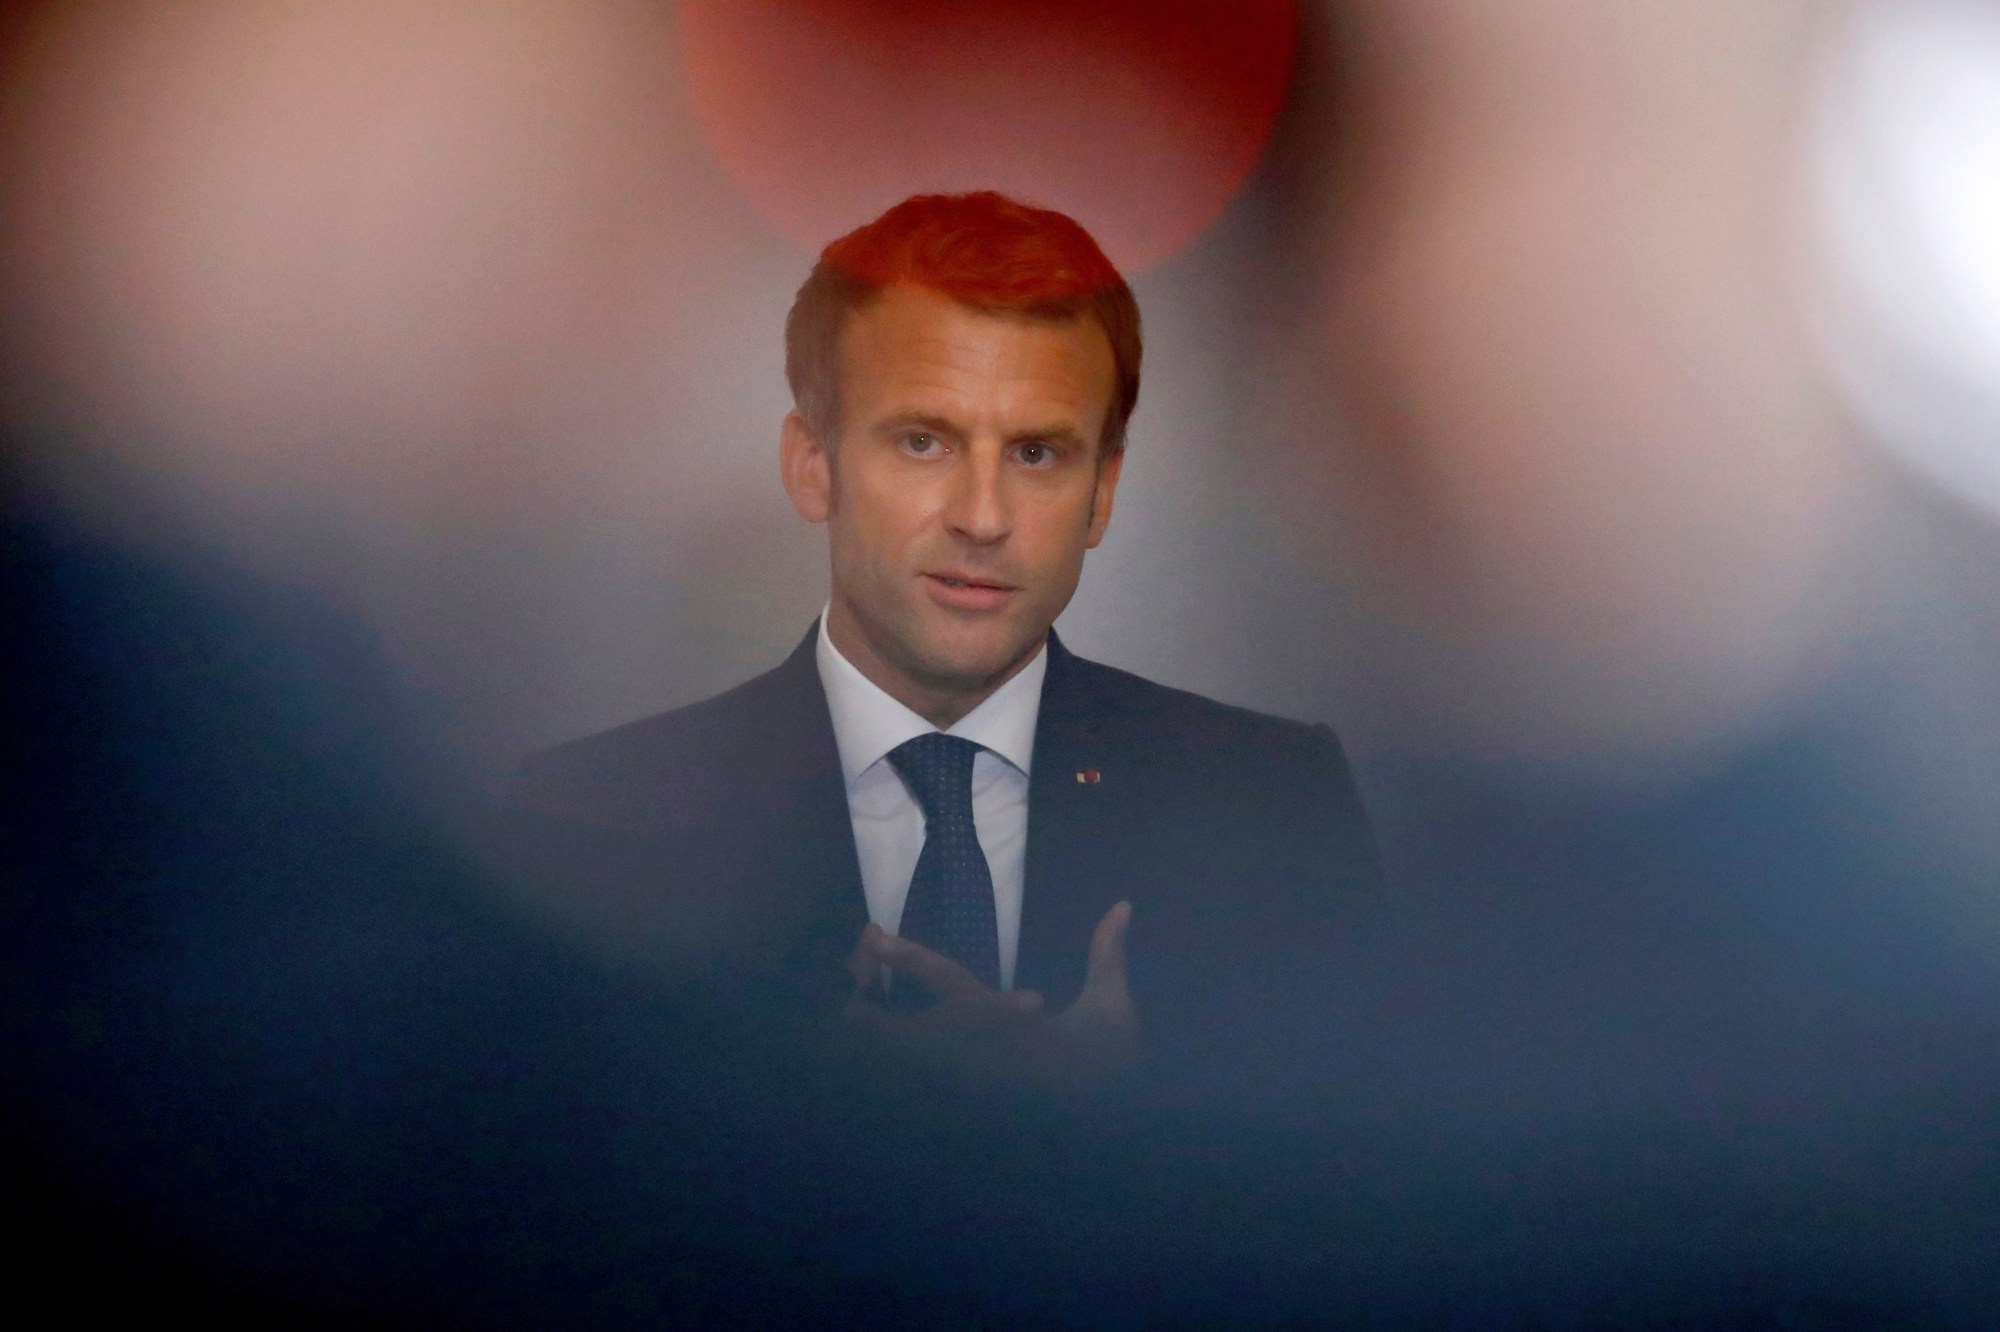 French President Macron delivers a speech at the national convention on mental health and psychiatry in Paris